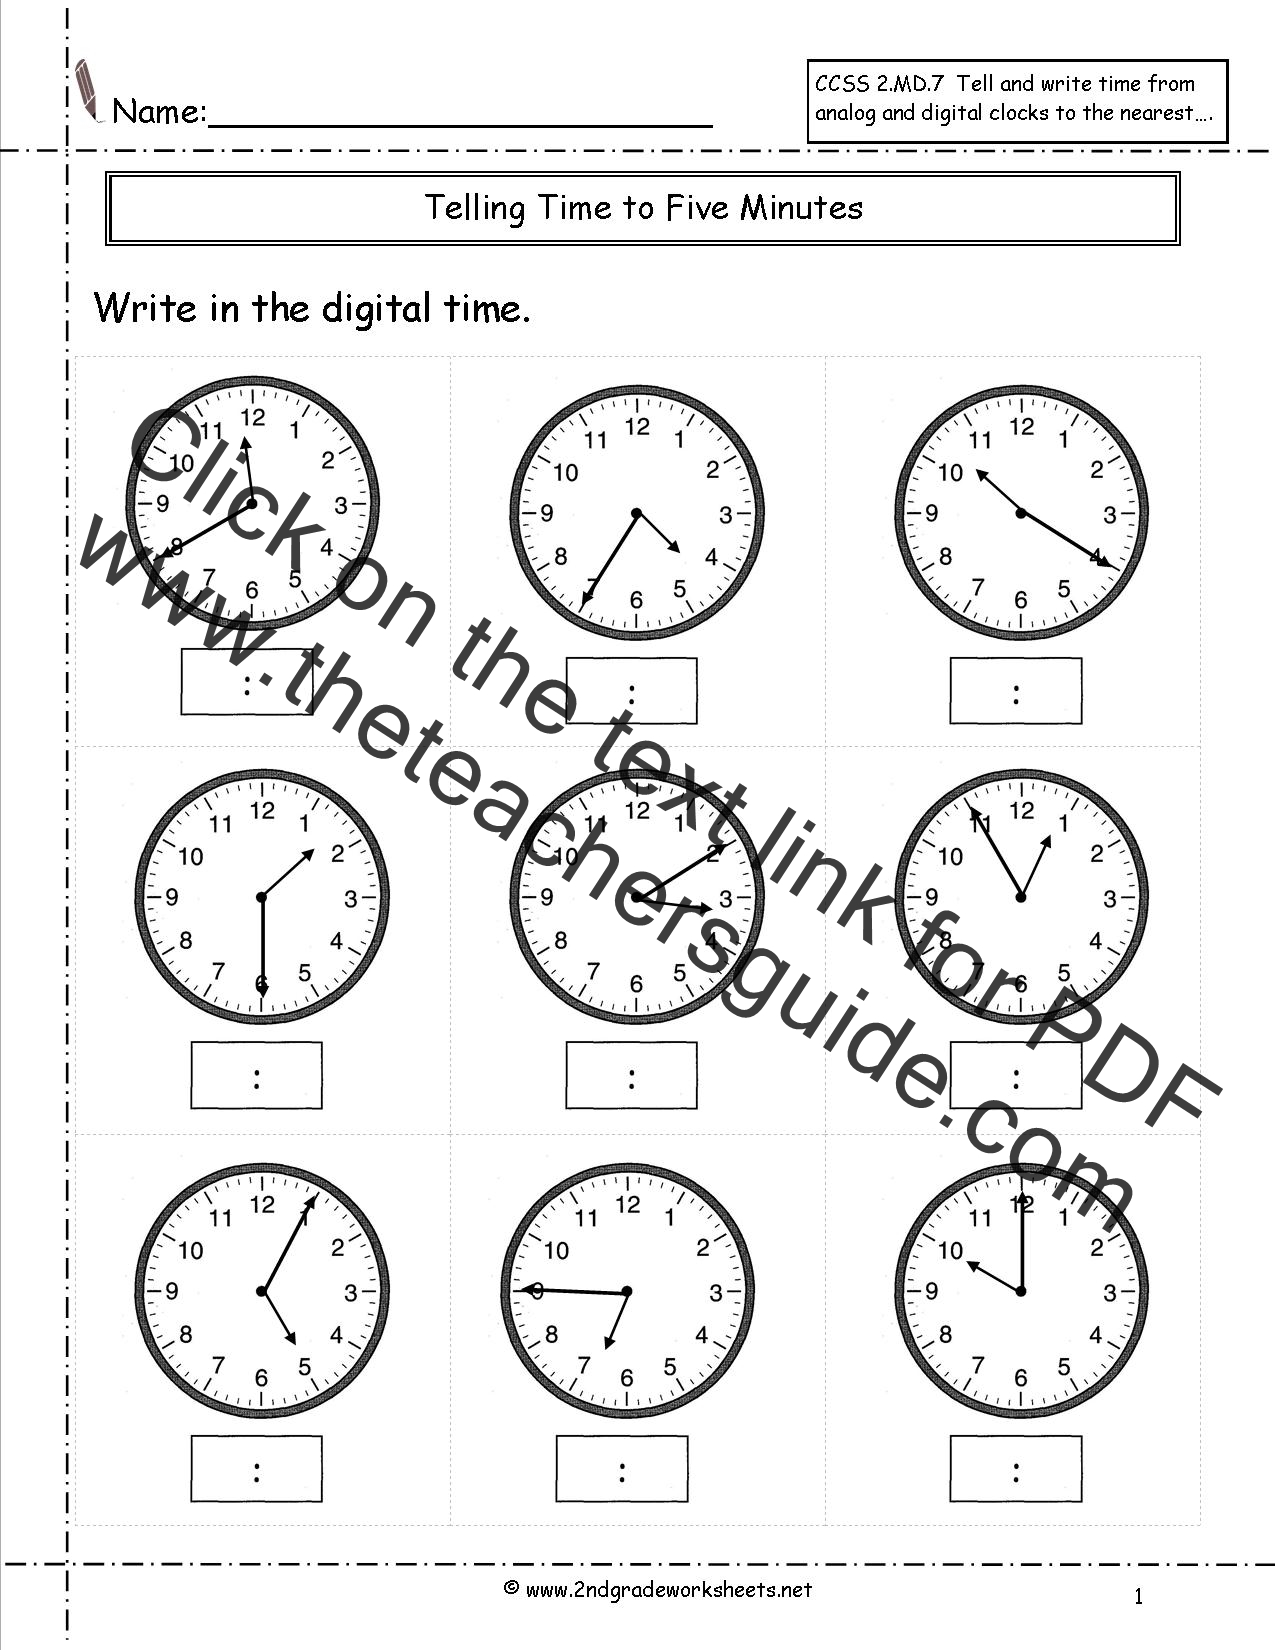 Worksheets Digital Clock Worksheets telling and writing time worksheets to nearest five minutes worksheet